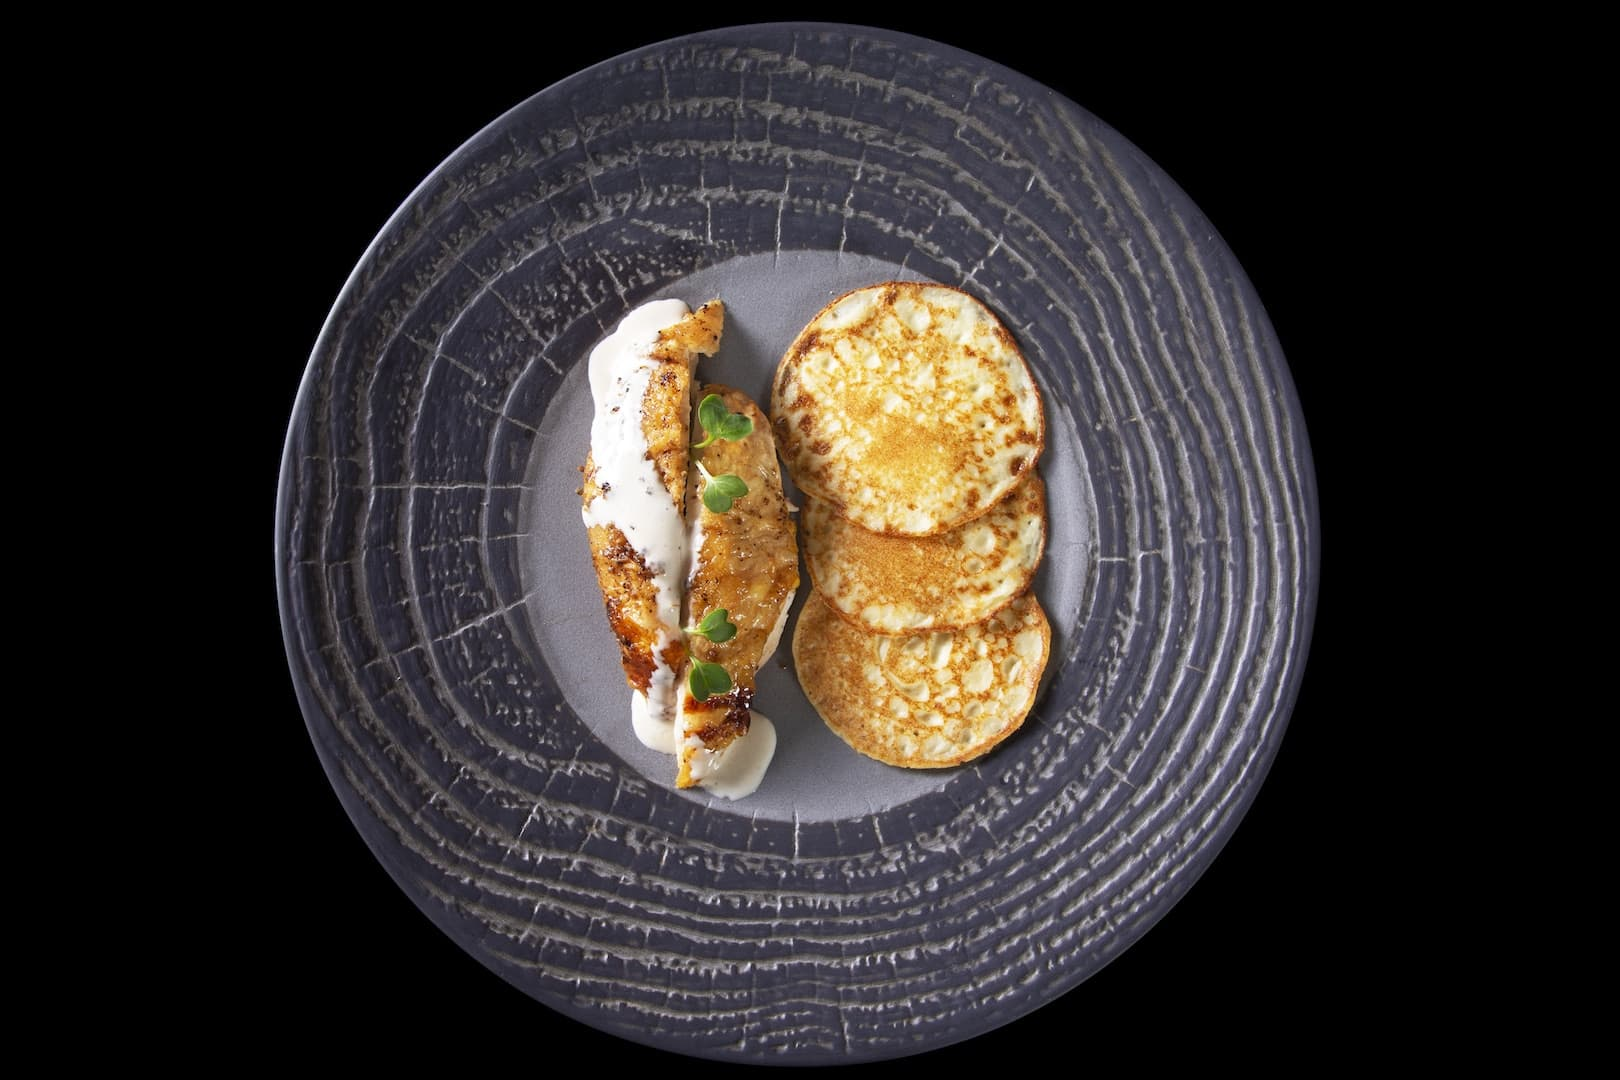 The 3-Michelin-star-meal at Oberoi Delhi is the pop-up to try